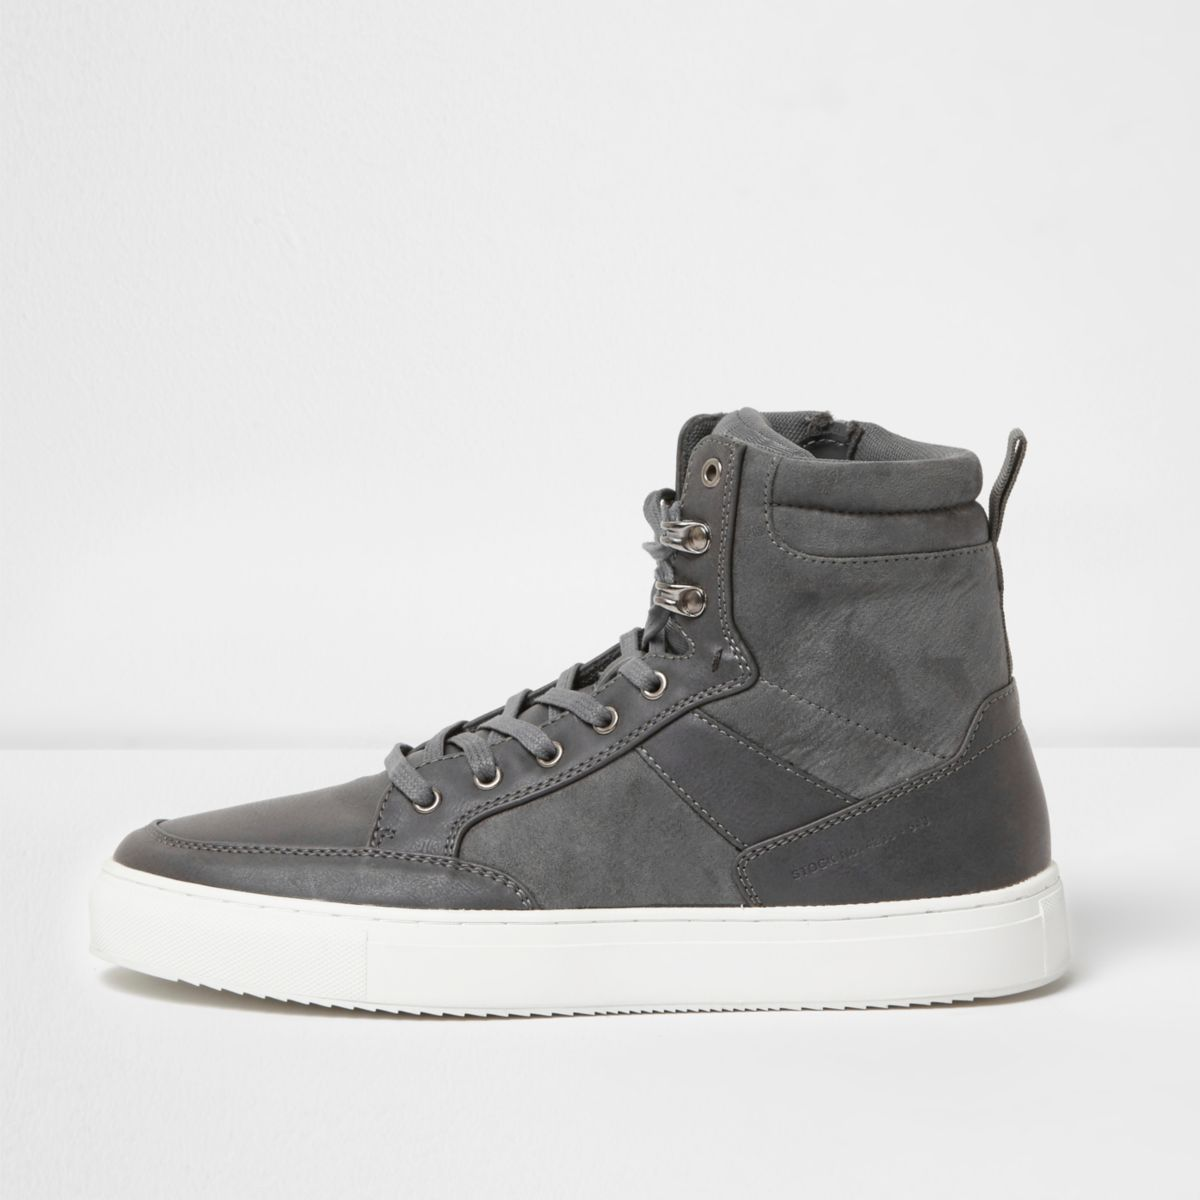 Grey high top contrast sole lace-up sneakers